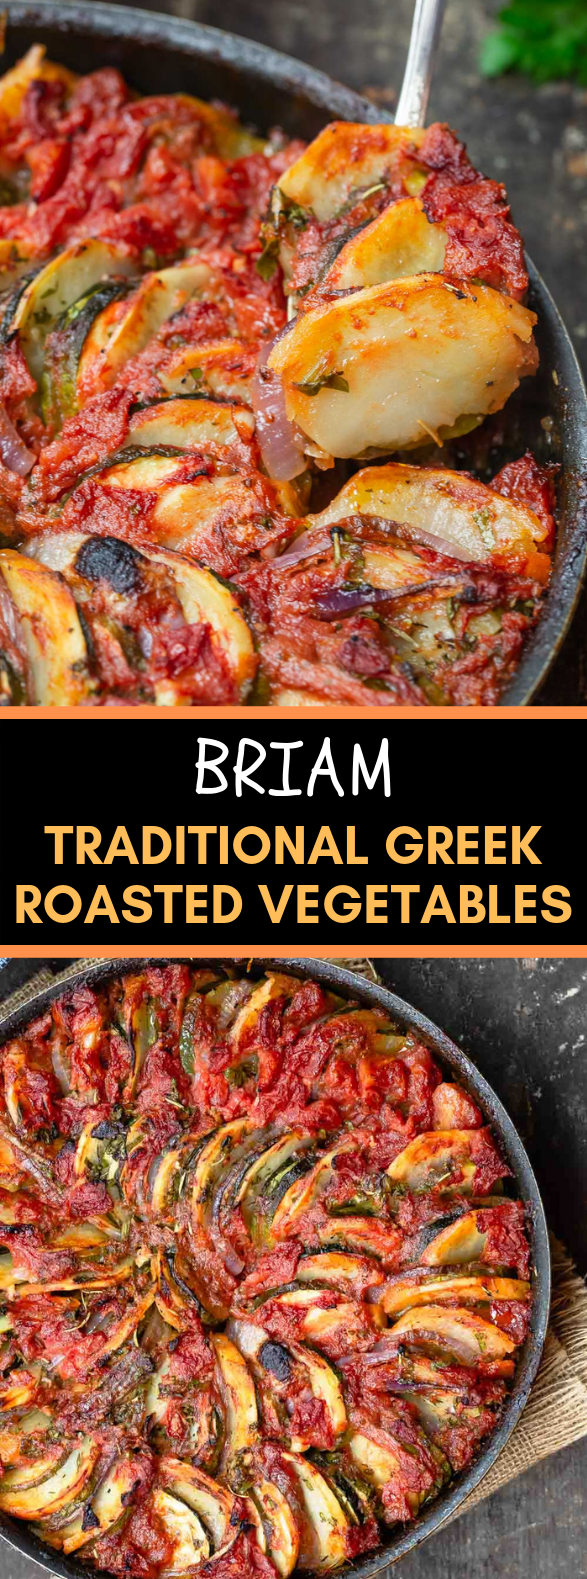 BRIAM: TRADITIONAL GREEK ROASTED VEGETABLES #vegan #glutenfree